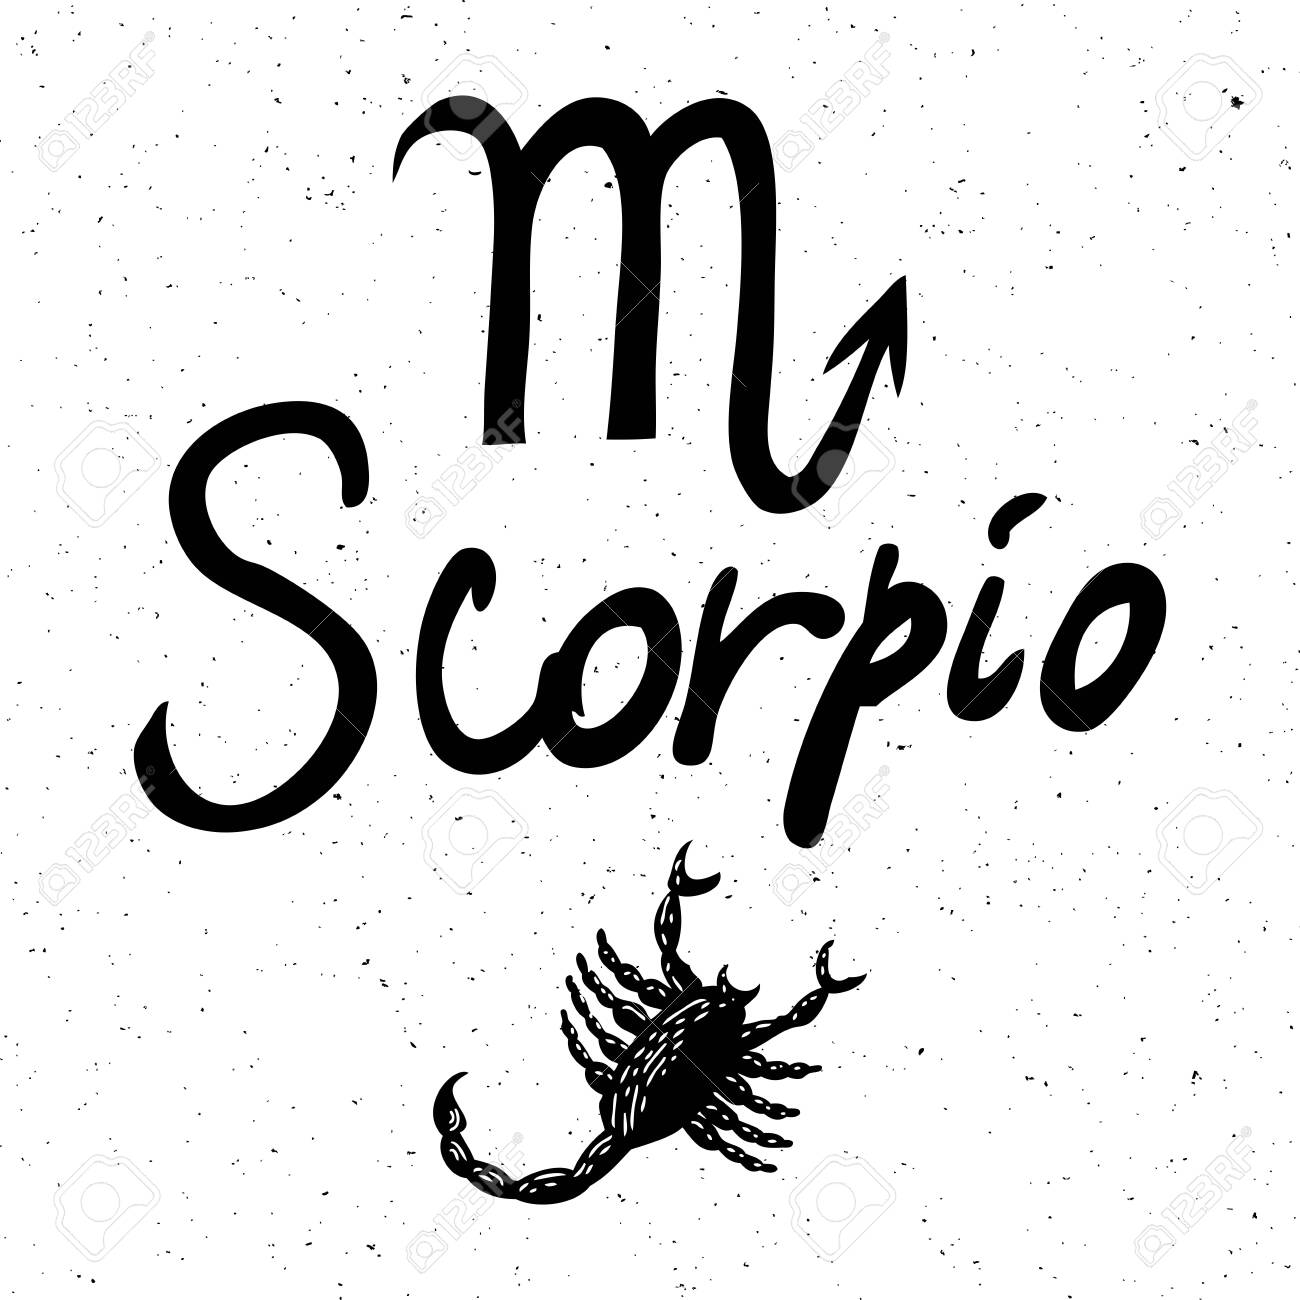 things-you-learn-by-dating-a-scorpio